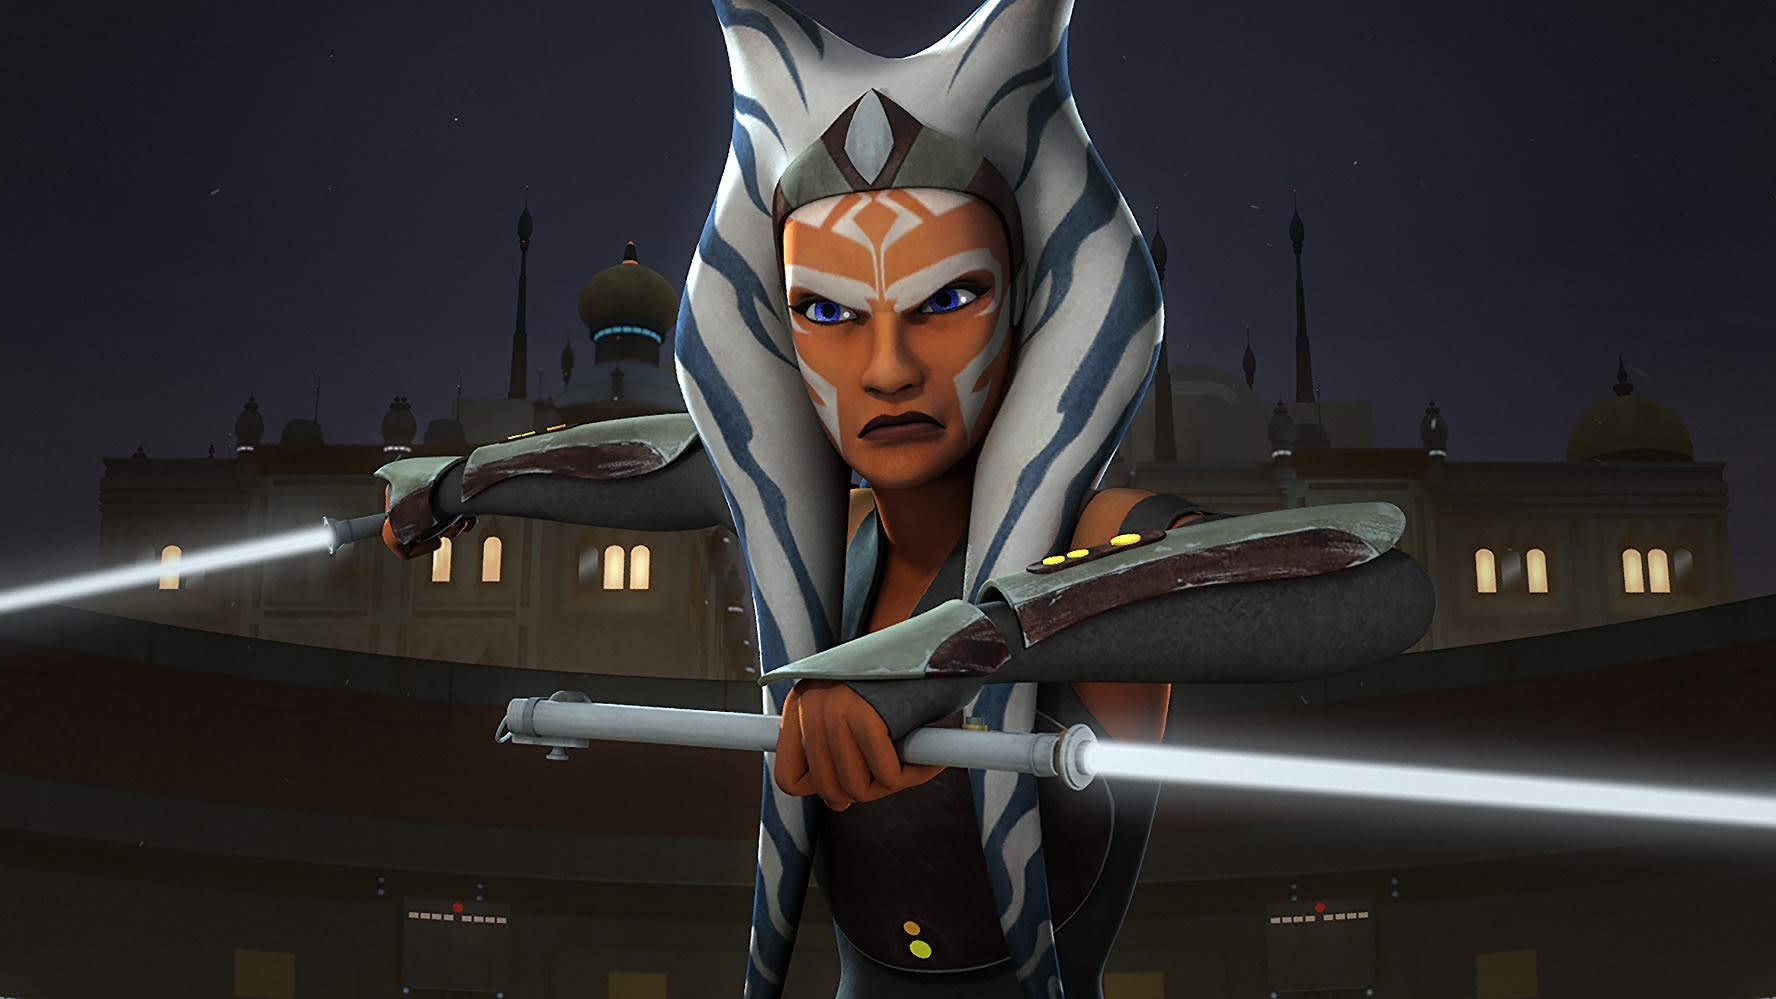 The hottest 'Star Wars' collectible is a character you've probably never heard of — Ahsoka Tano